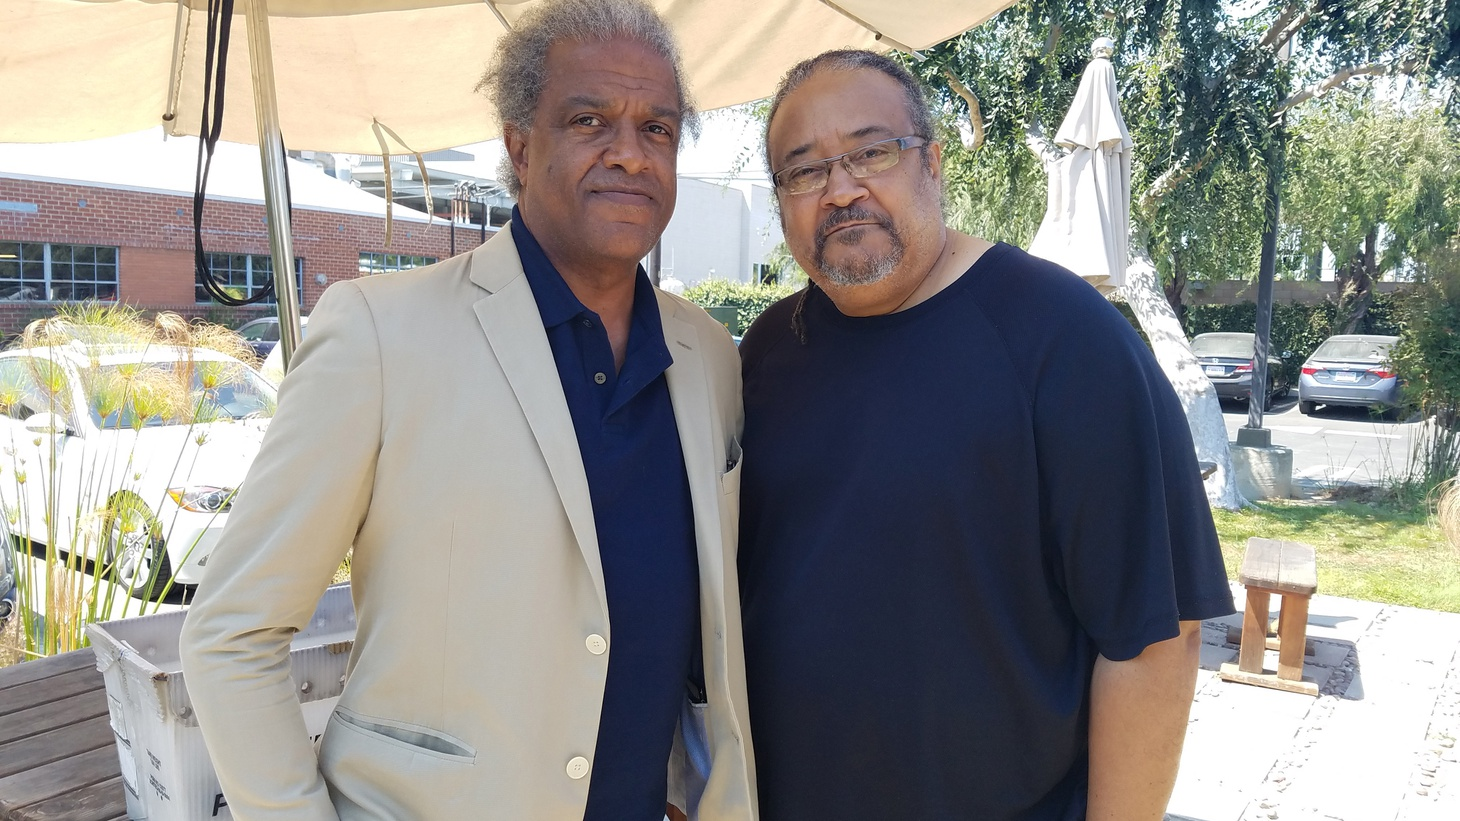 Director Ernest Dickerson joins Elvis Mitchell to celebrate the 25th anniversary of his first film starring Tupac Shakur, Juice.